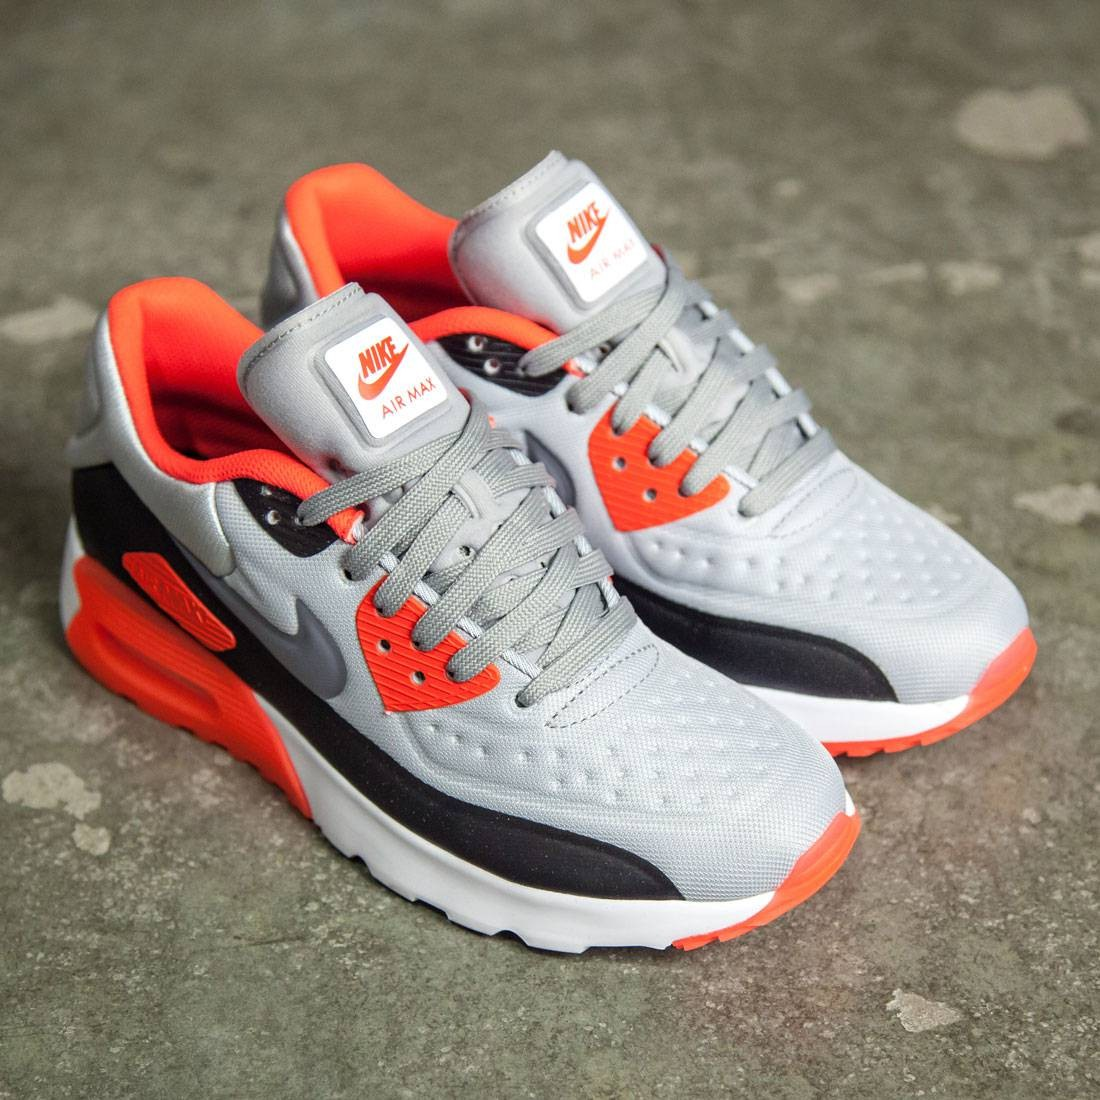 Nike Big Kids Nike Air Max 90 Ultra Se (Gs) (wolf grey / cool grey-bright crimson-black)